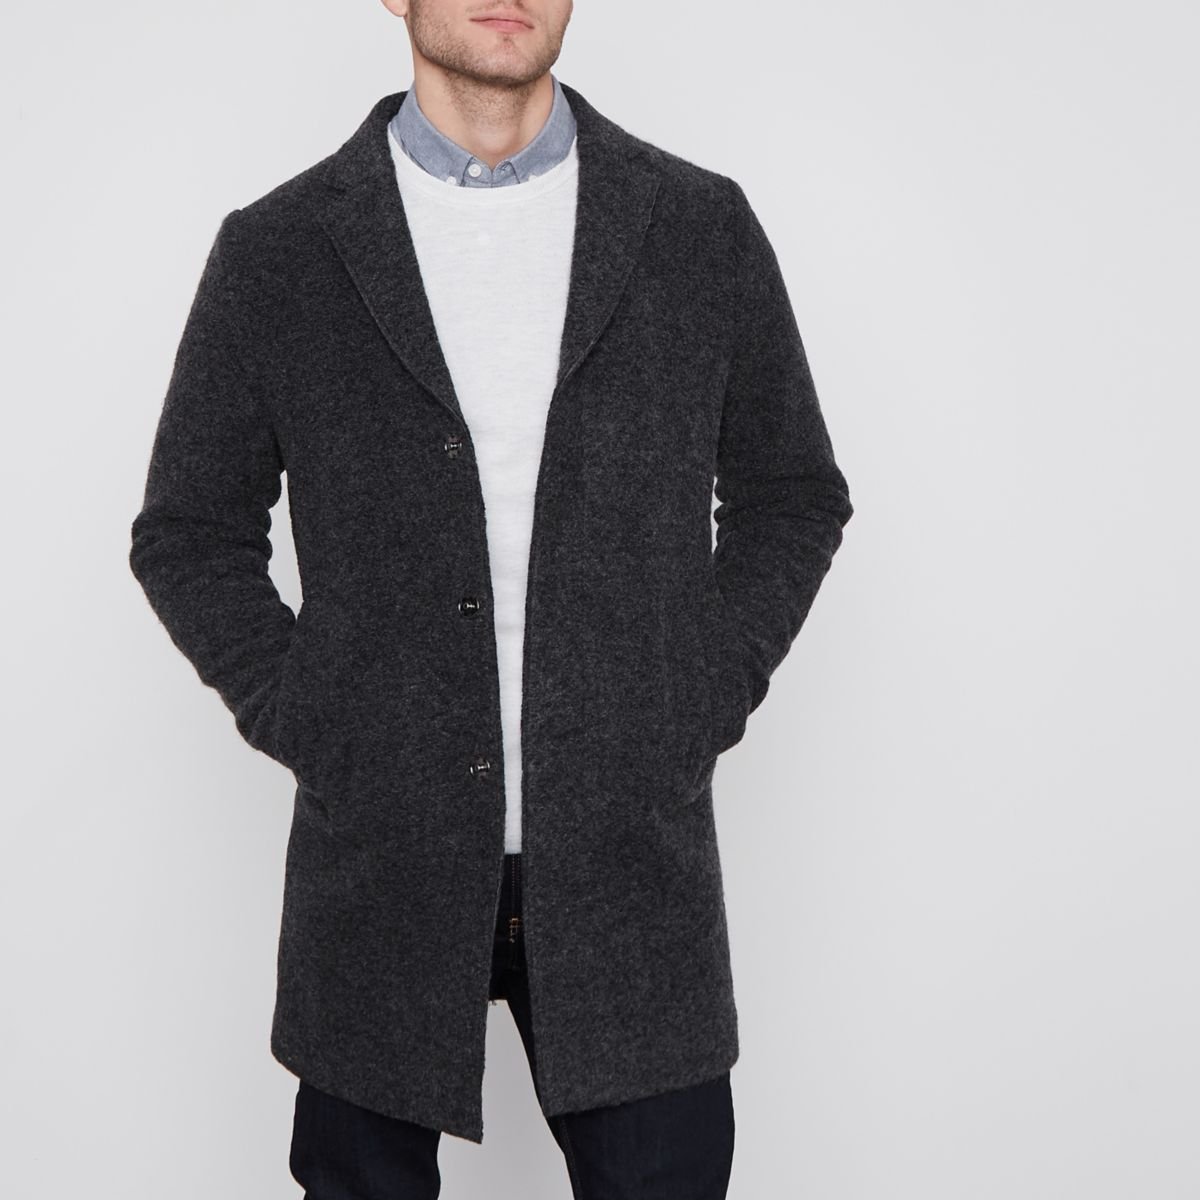 Jack & Jones Premier dark grey coat